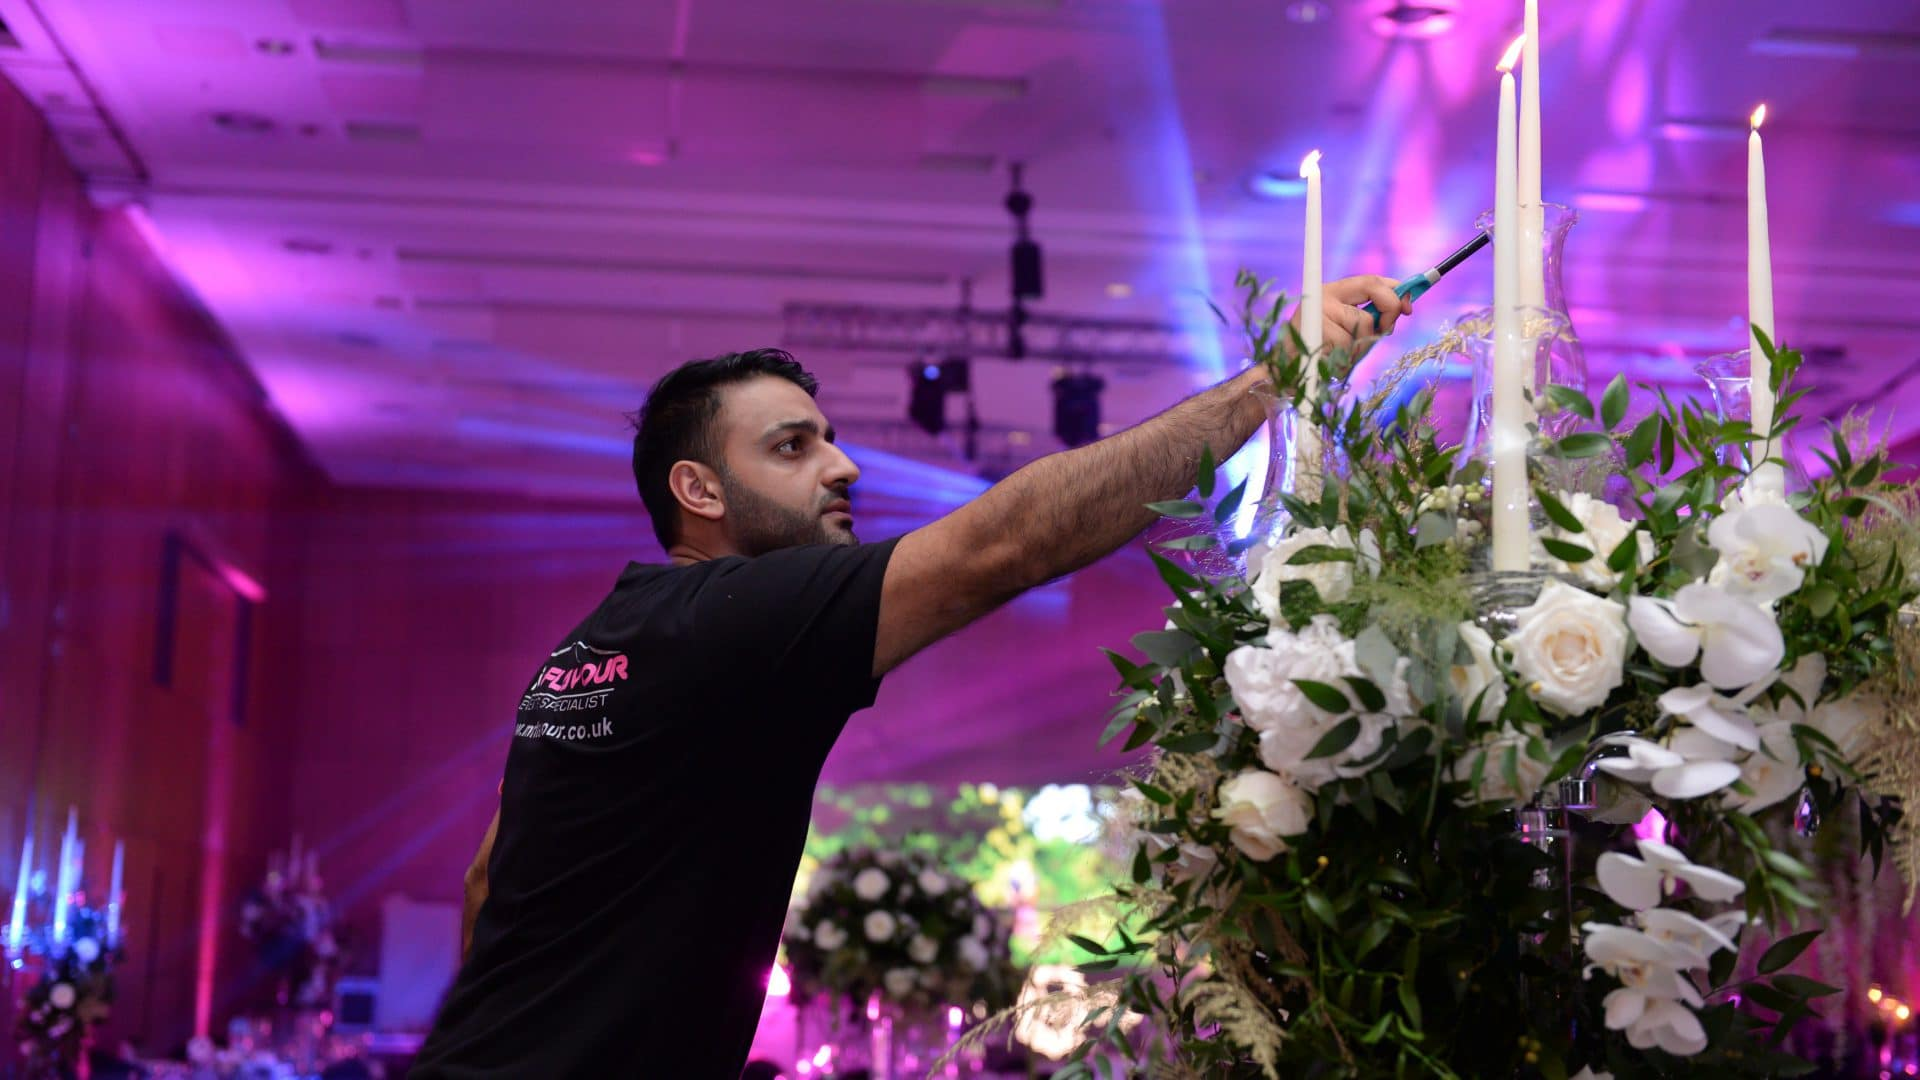 pakistani wedding planners manchester